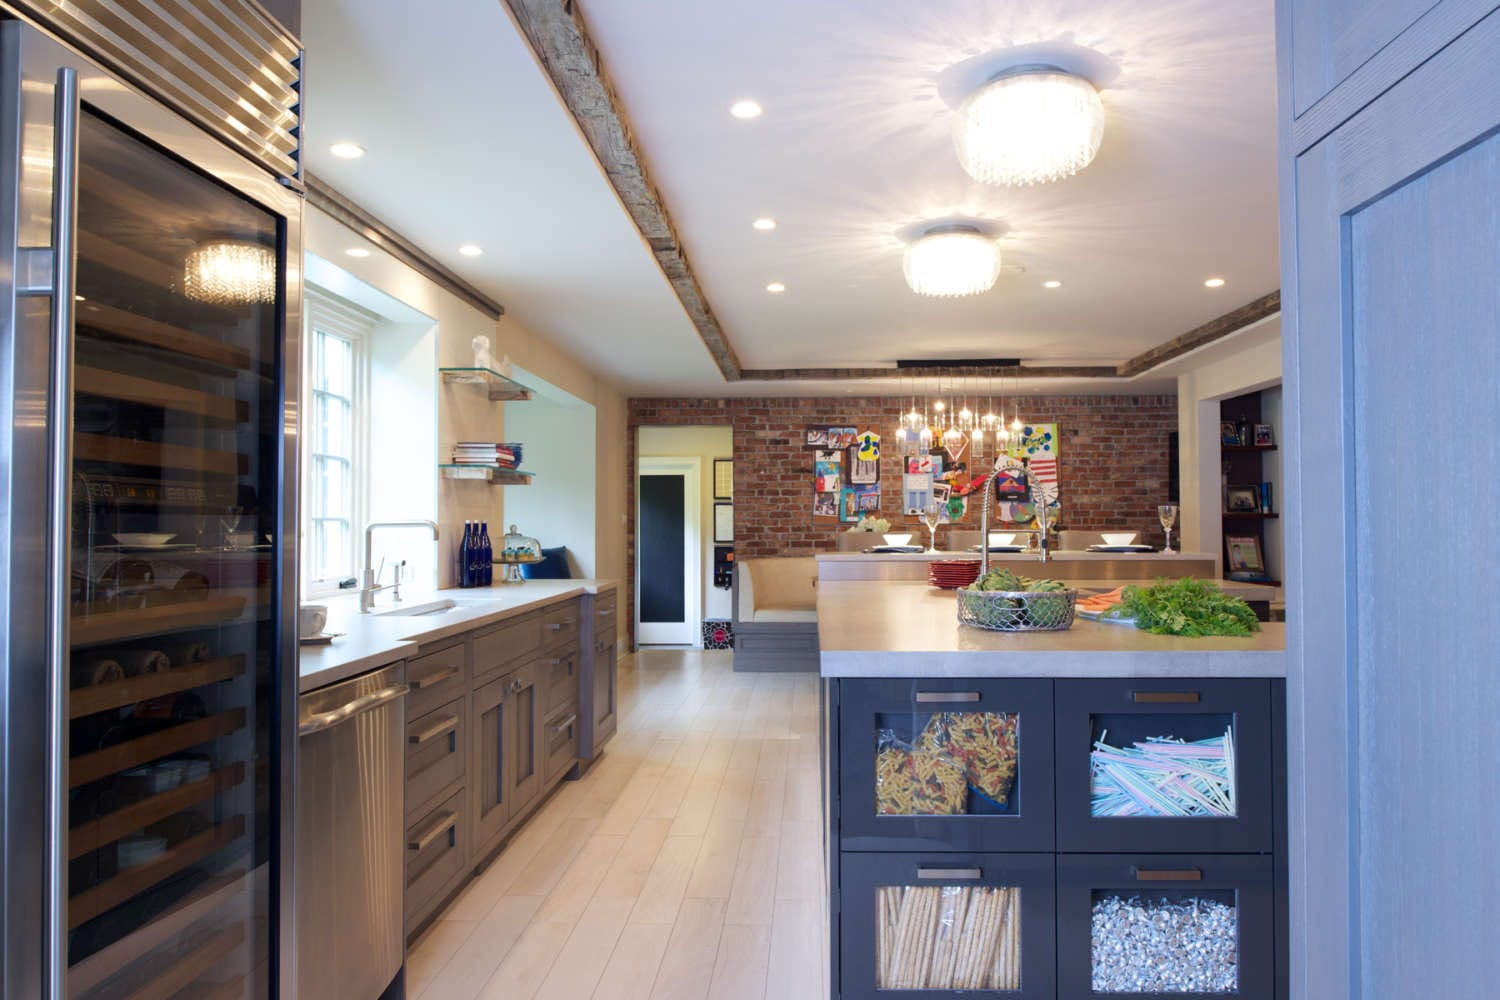 Expansive family-friendly kitchen features porcelain plank style tile flooring, exposed brick walls and a mix of shaker style Bilotta Cabinetry in rift white ash with a stain and flat panel, high-gloss blue-grey laquer finish cabinets by Artcraft. Island drawer feature glass fronts to easily iedntify the contents. Design by Jeff Eakley of Bilotta Kitchens.